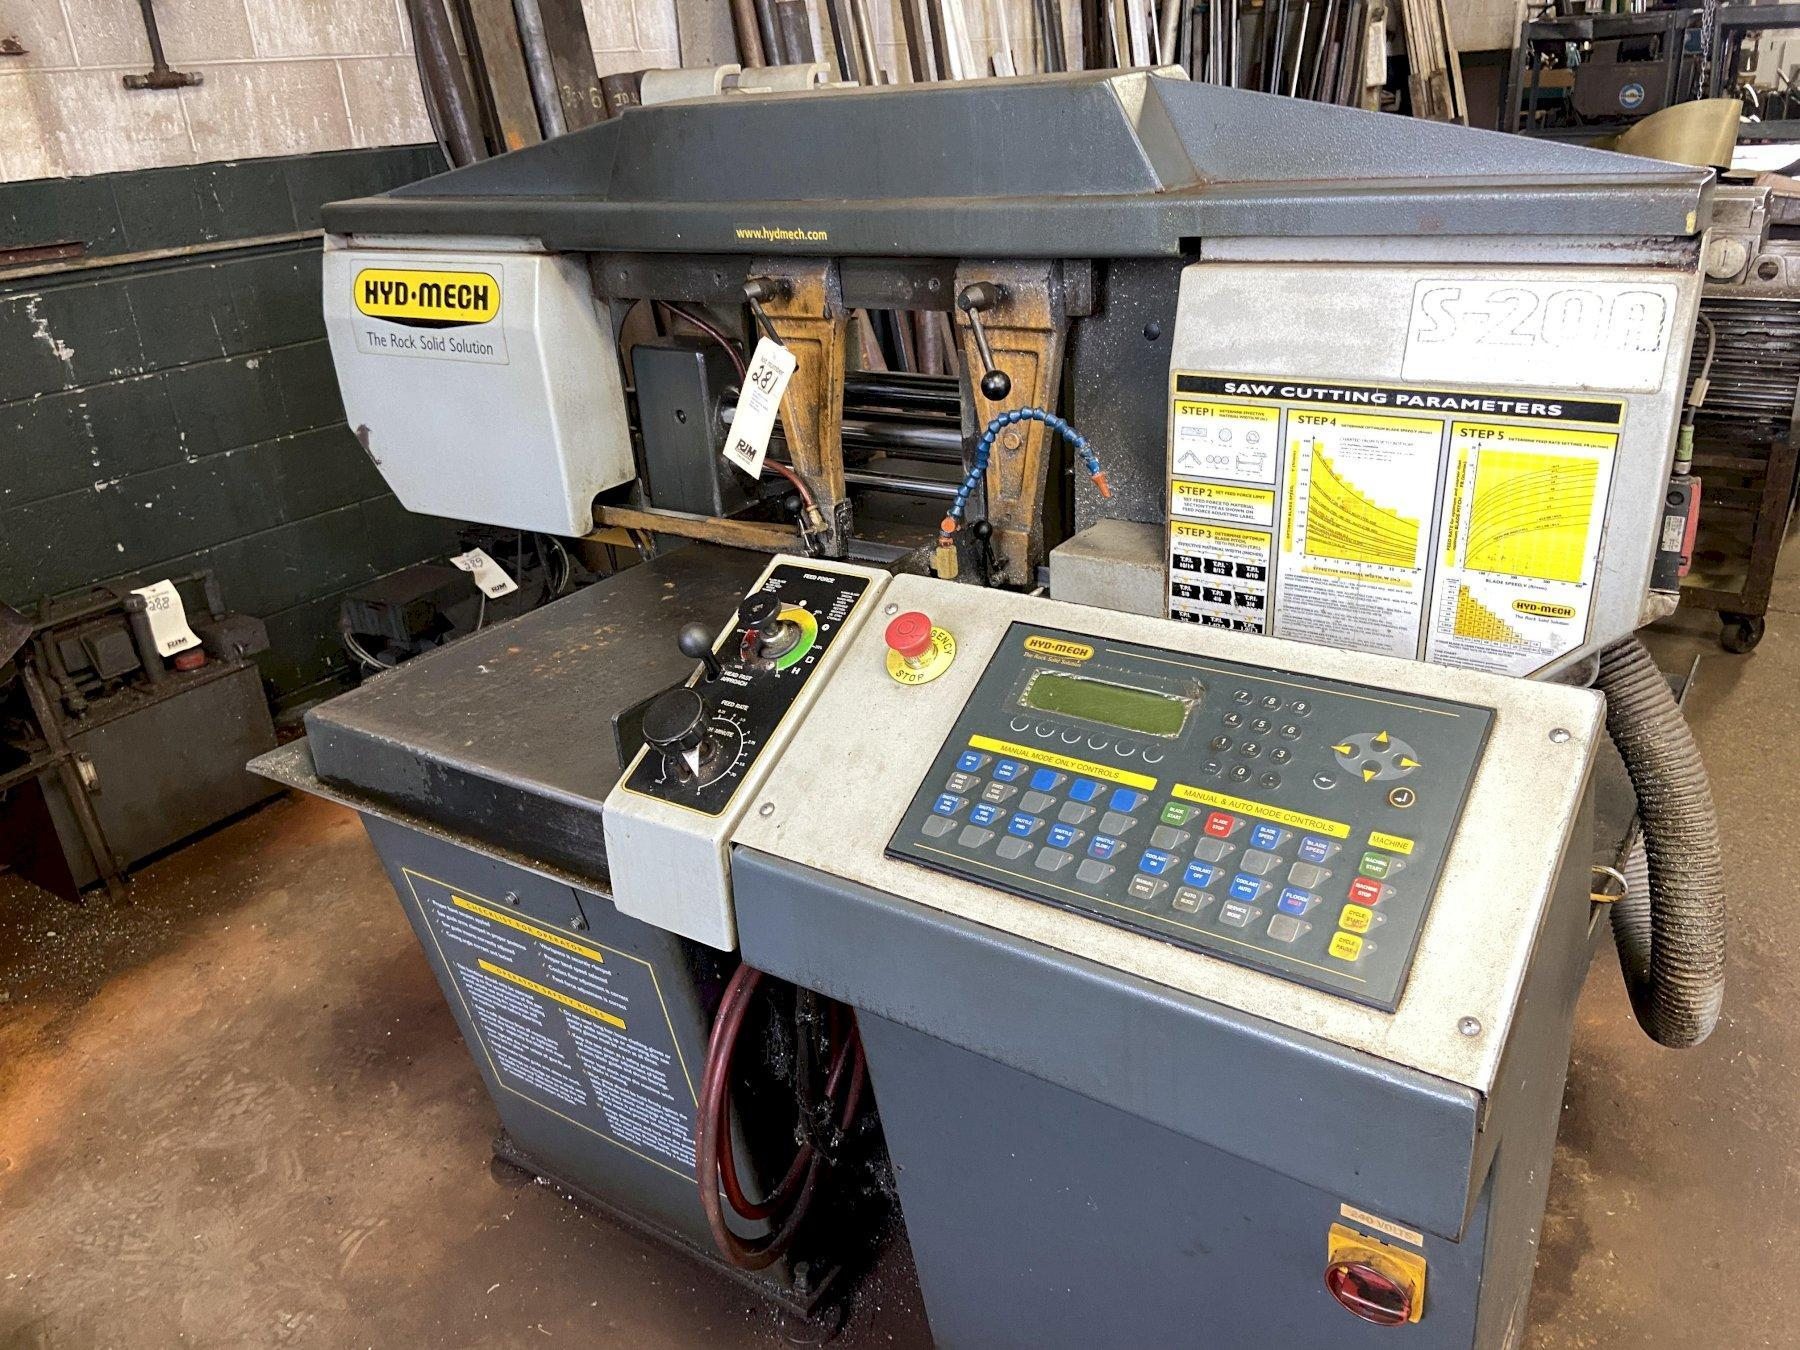 """Hyd-Mech S-20A Automatic Horizontal Saw, 13"""" x 18"""" Rect, 12"""" Rounds, 1"""" Blade, Bundling, Bar Feed, Mitre Cutting, Infeed and Outfeed Table, 2007"""